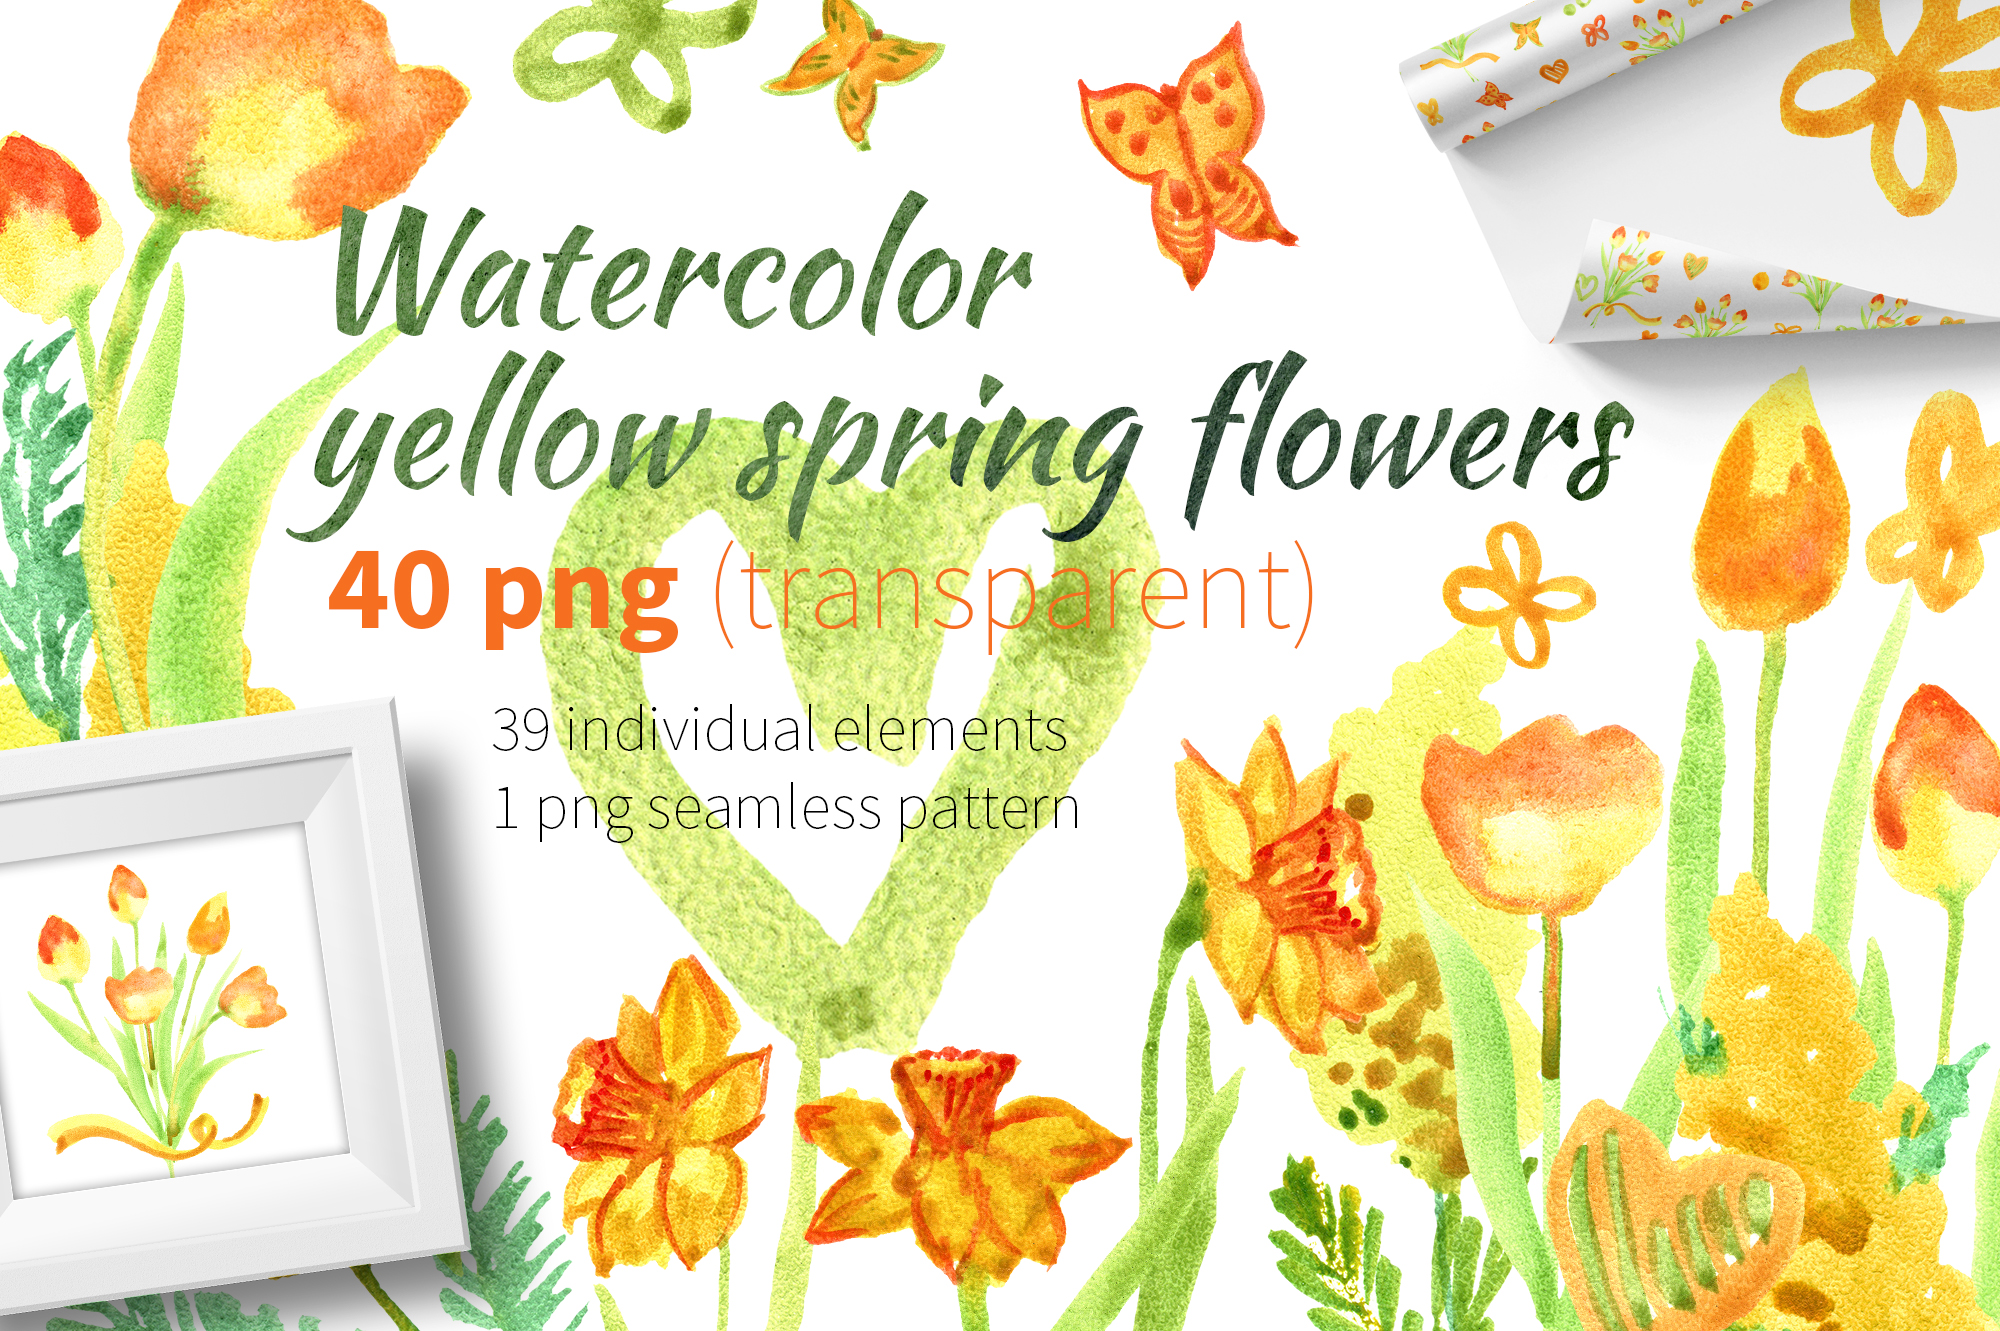 Watercolor yellow spring flowers example image 1